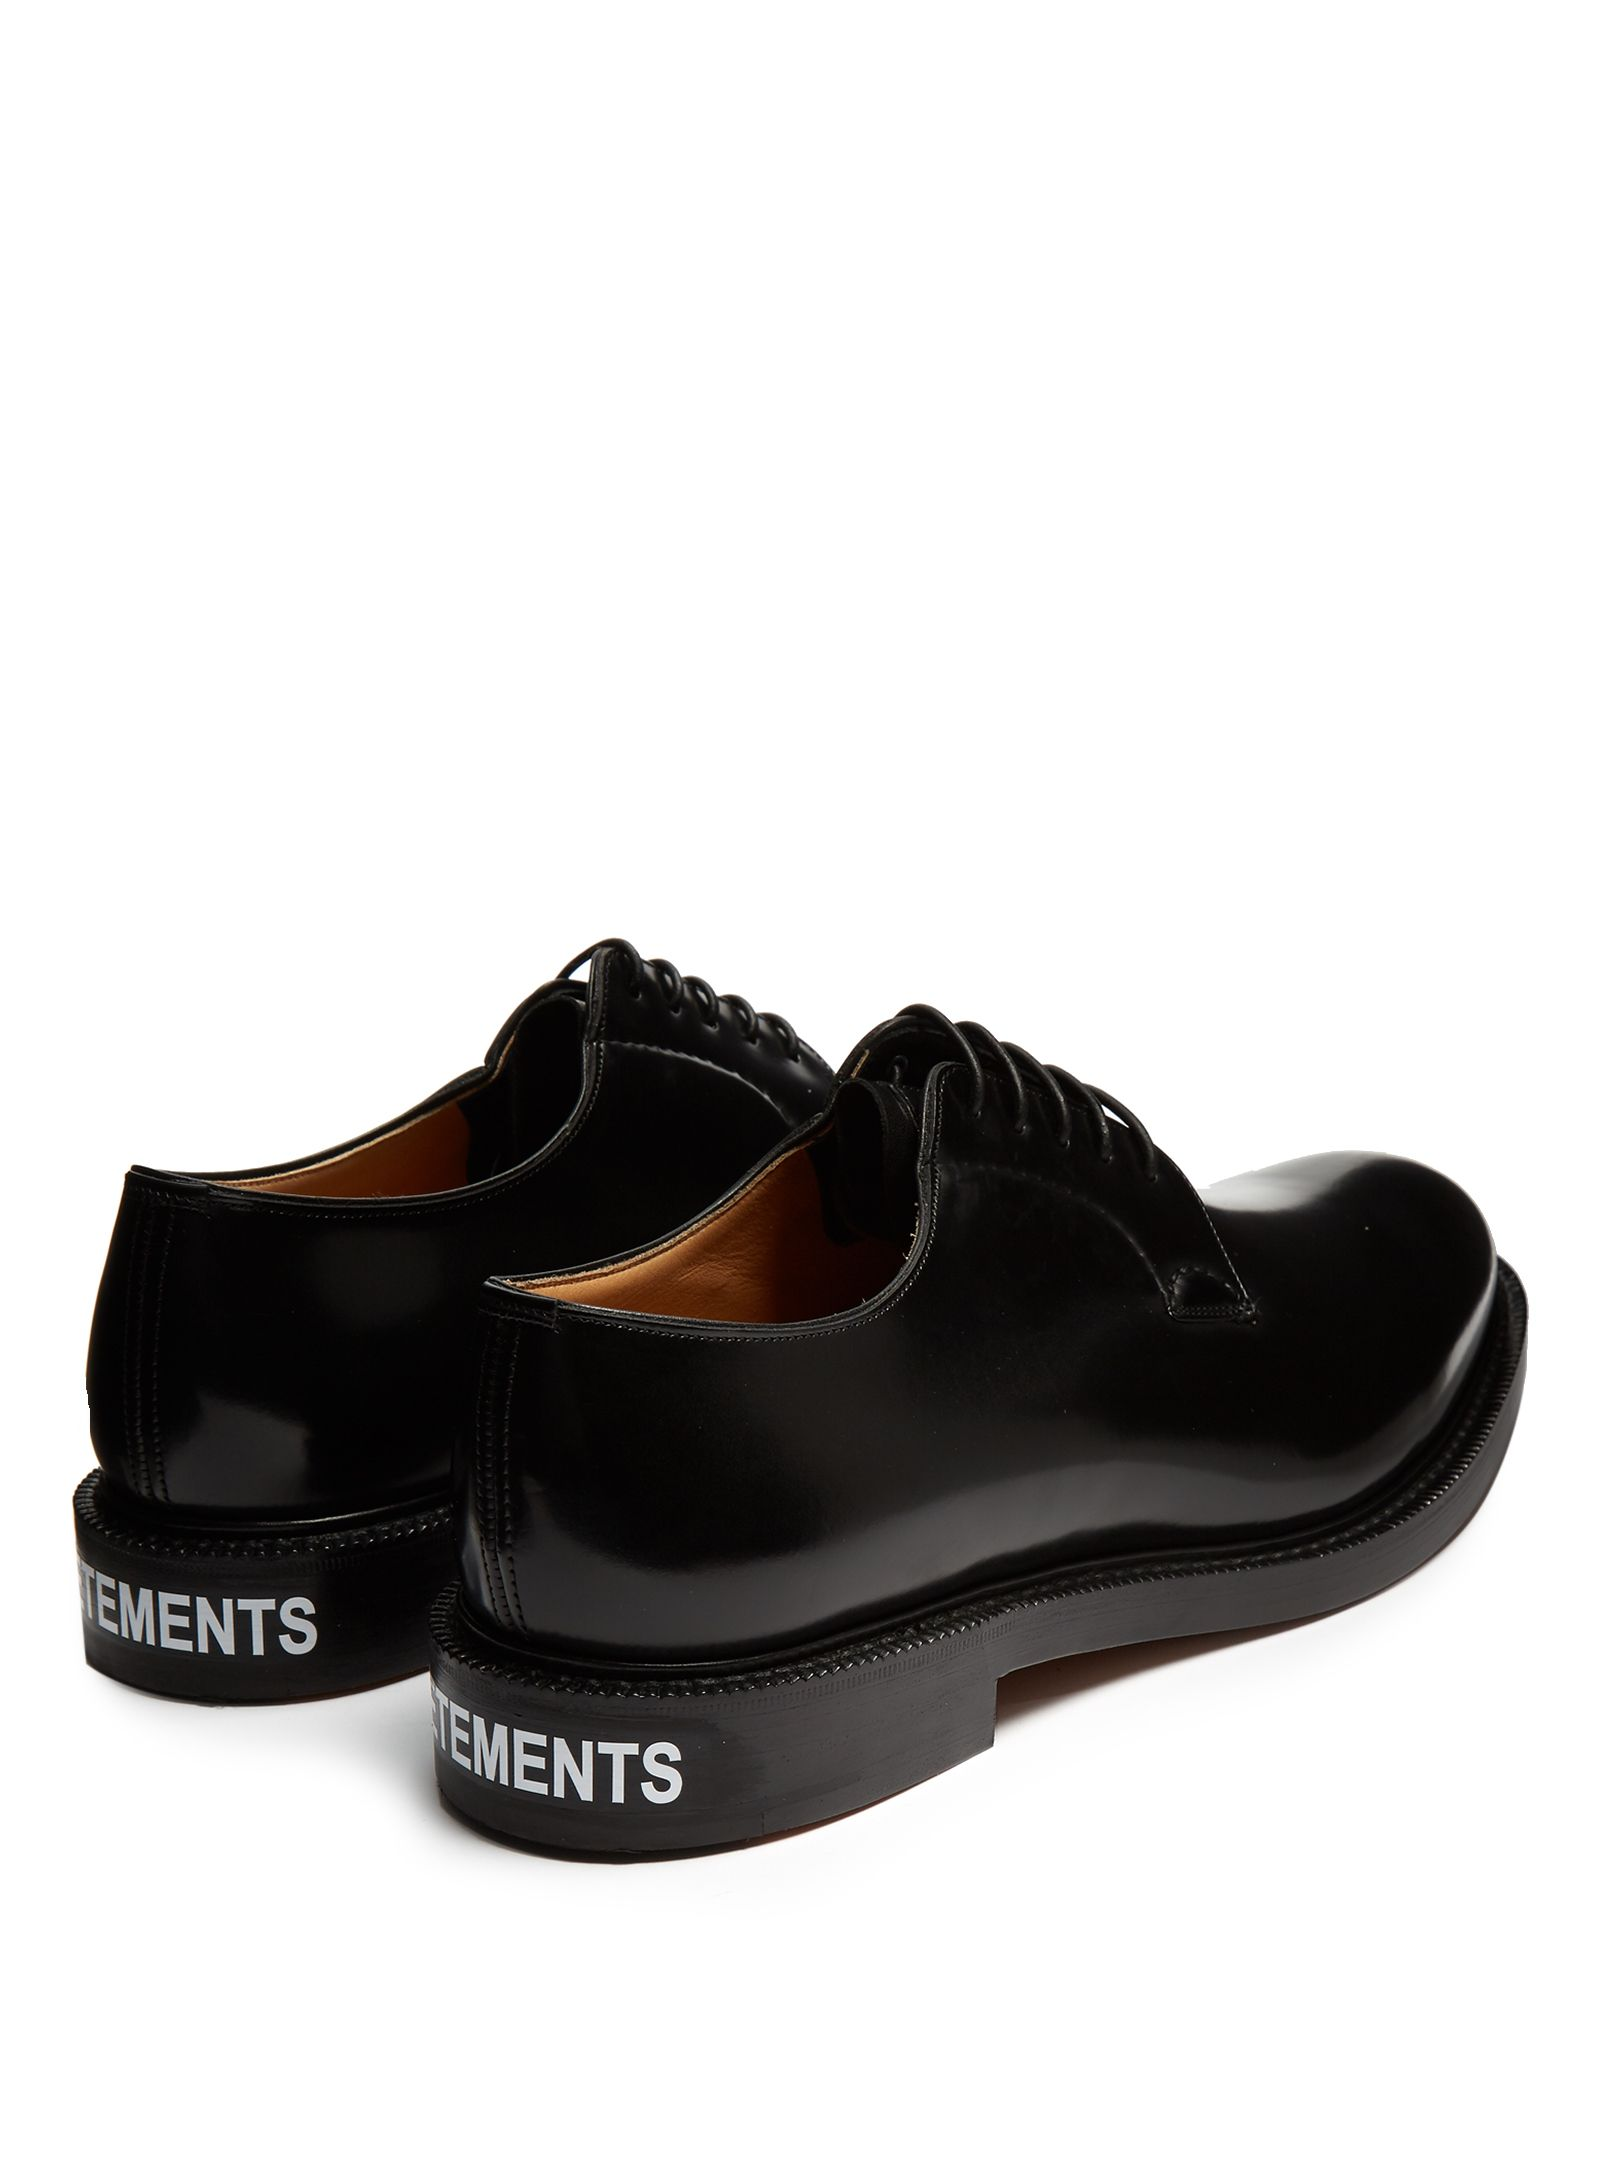 bd70522b162 Click here to buy Vetements X Church s leather derby shoes at  MATCHESFASHION.COM